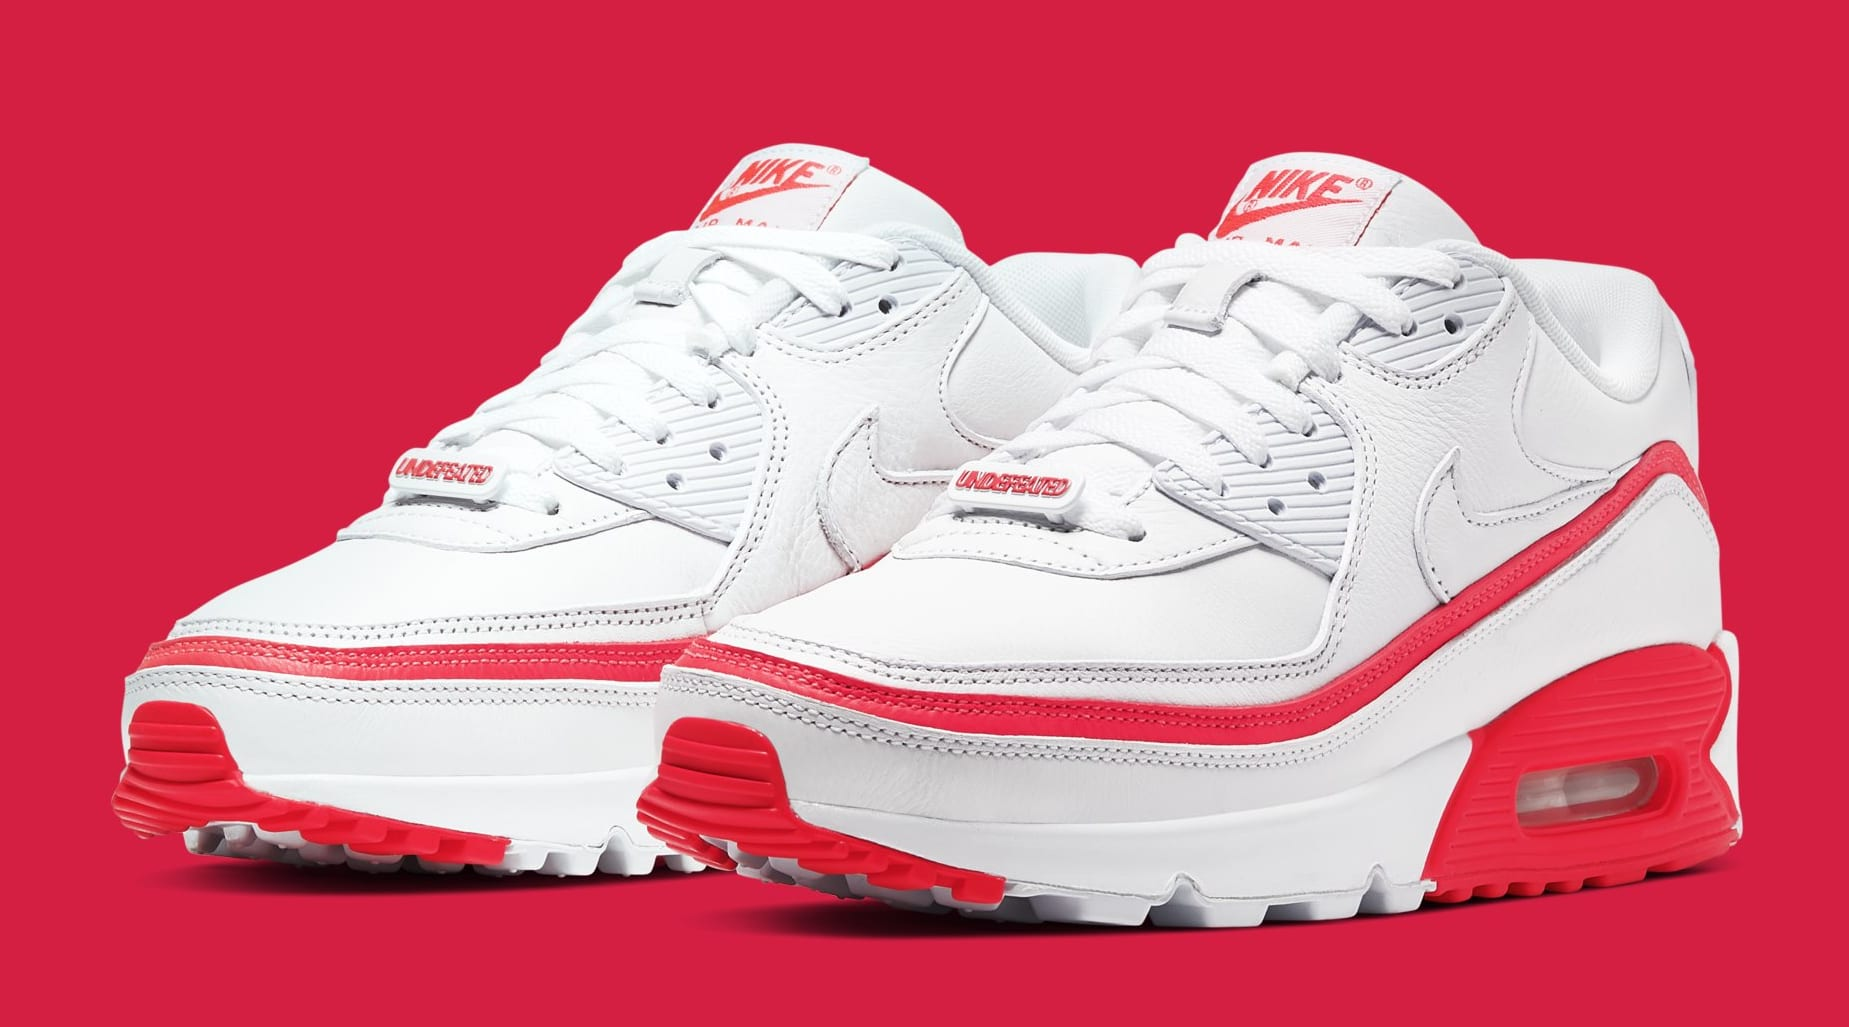 undefeated-nike-air-max-90-white-solar-red-cj7197-103-pair